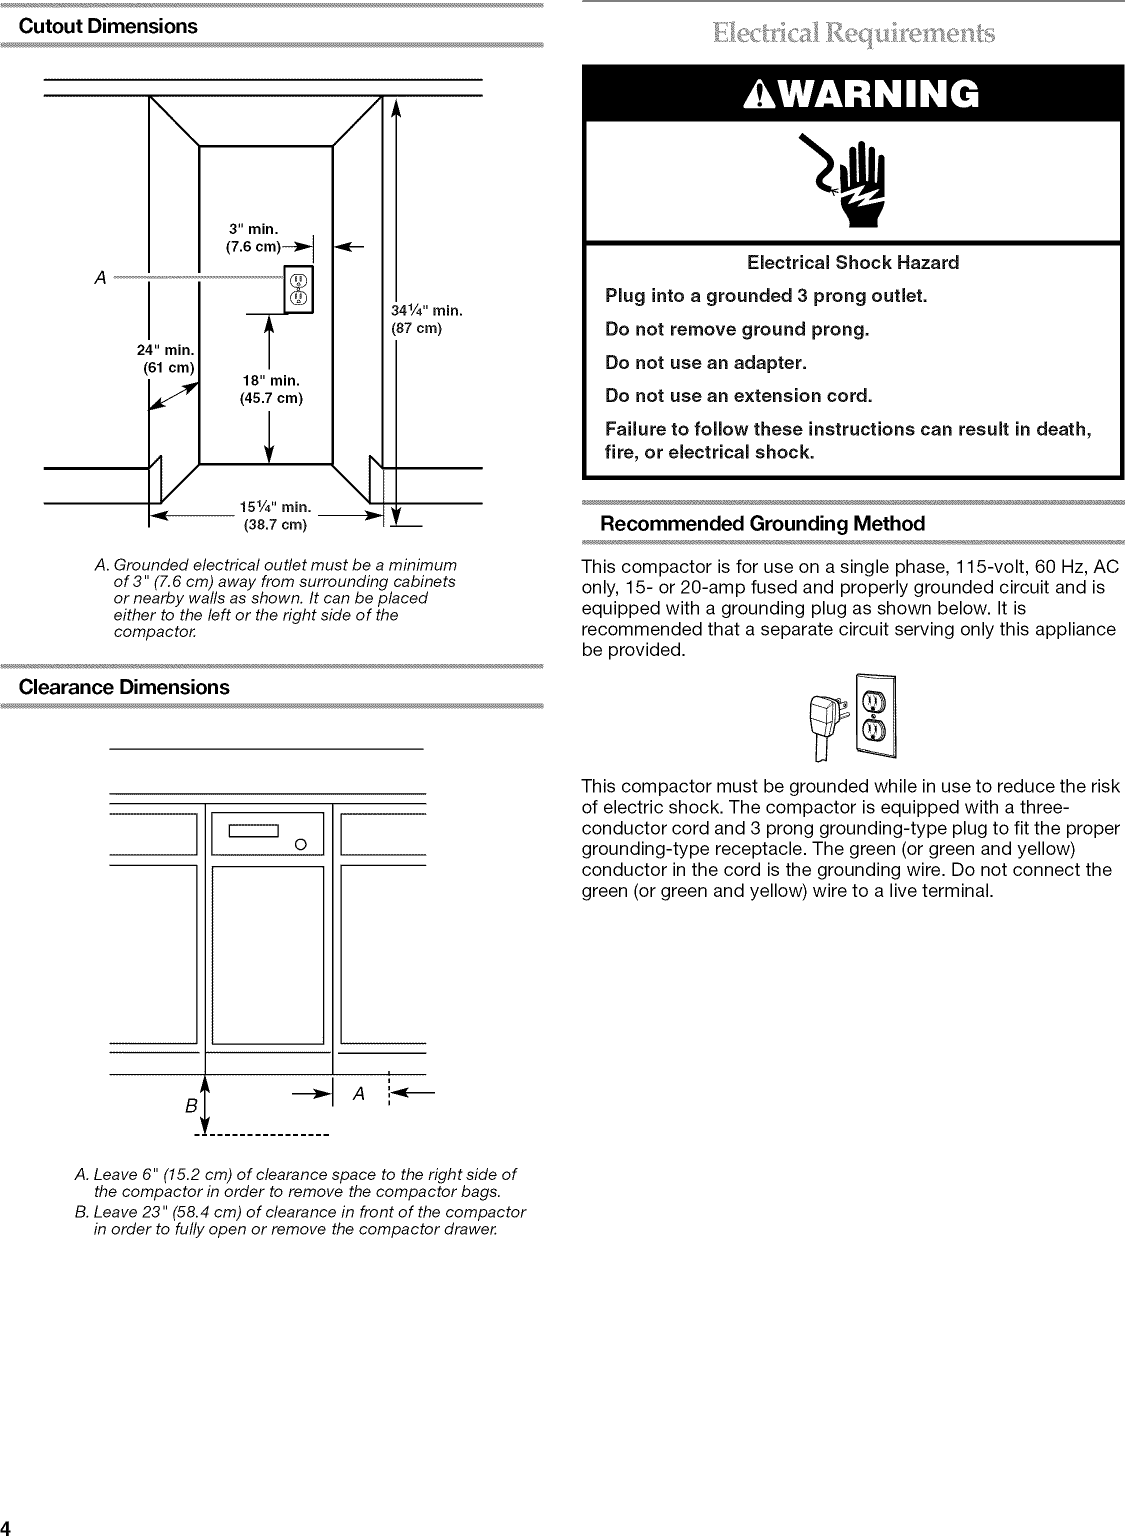 Kitchenaid Trash Compactor Repair Guide Kitchen Appliances Tips Wiring Diagram Page 4 Of 12 Kucs03ftpa1 User Manual Manuals And Guides L1003179